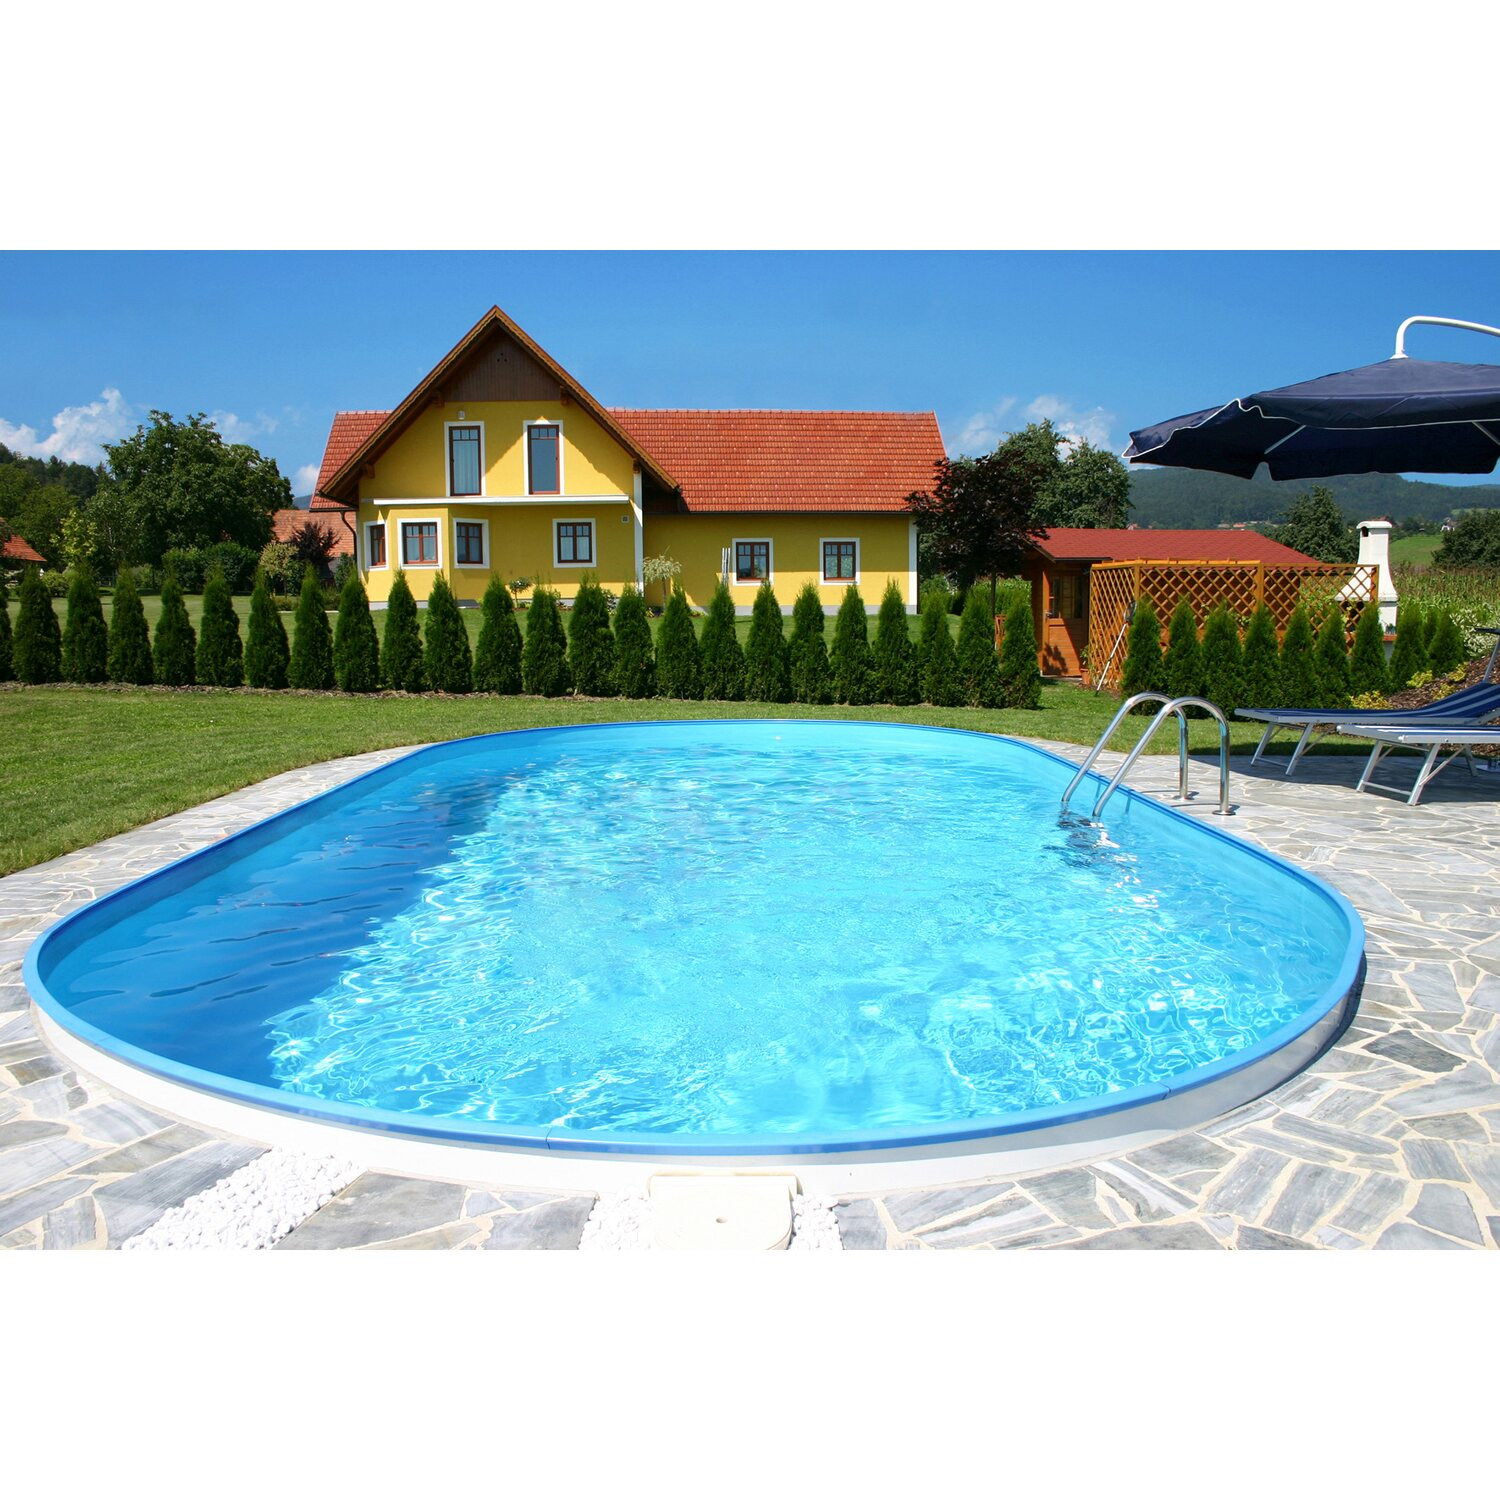 Stahlwand pool set ferrara einbaubecken ovalform 525 cm x for Obi poolfolie